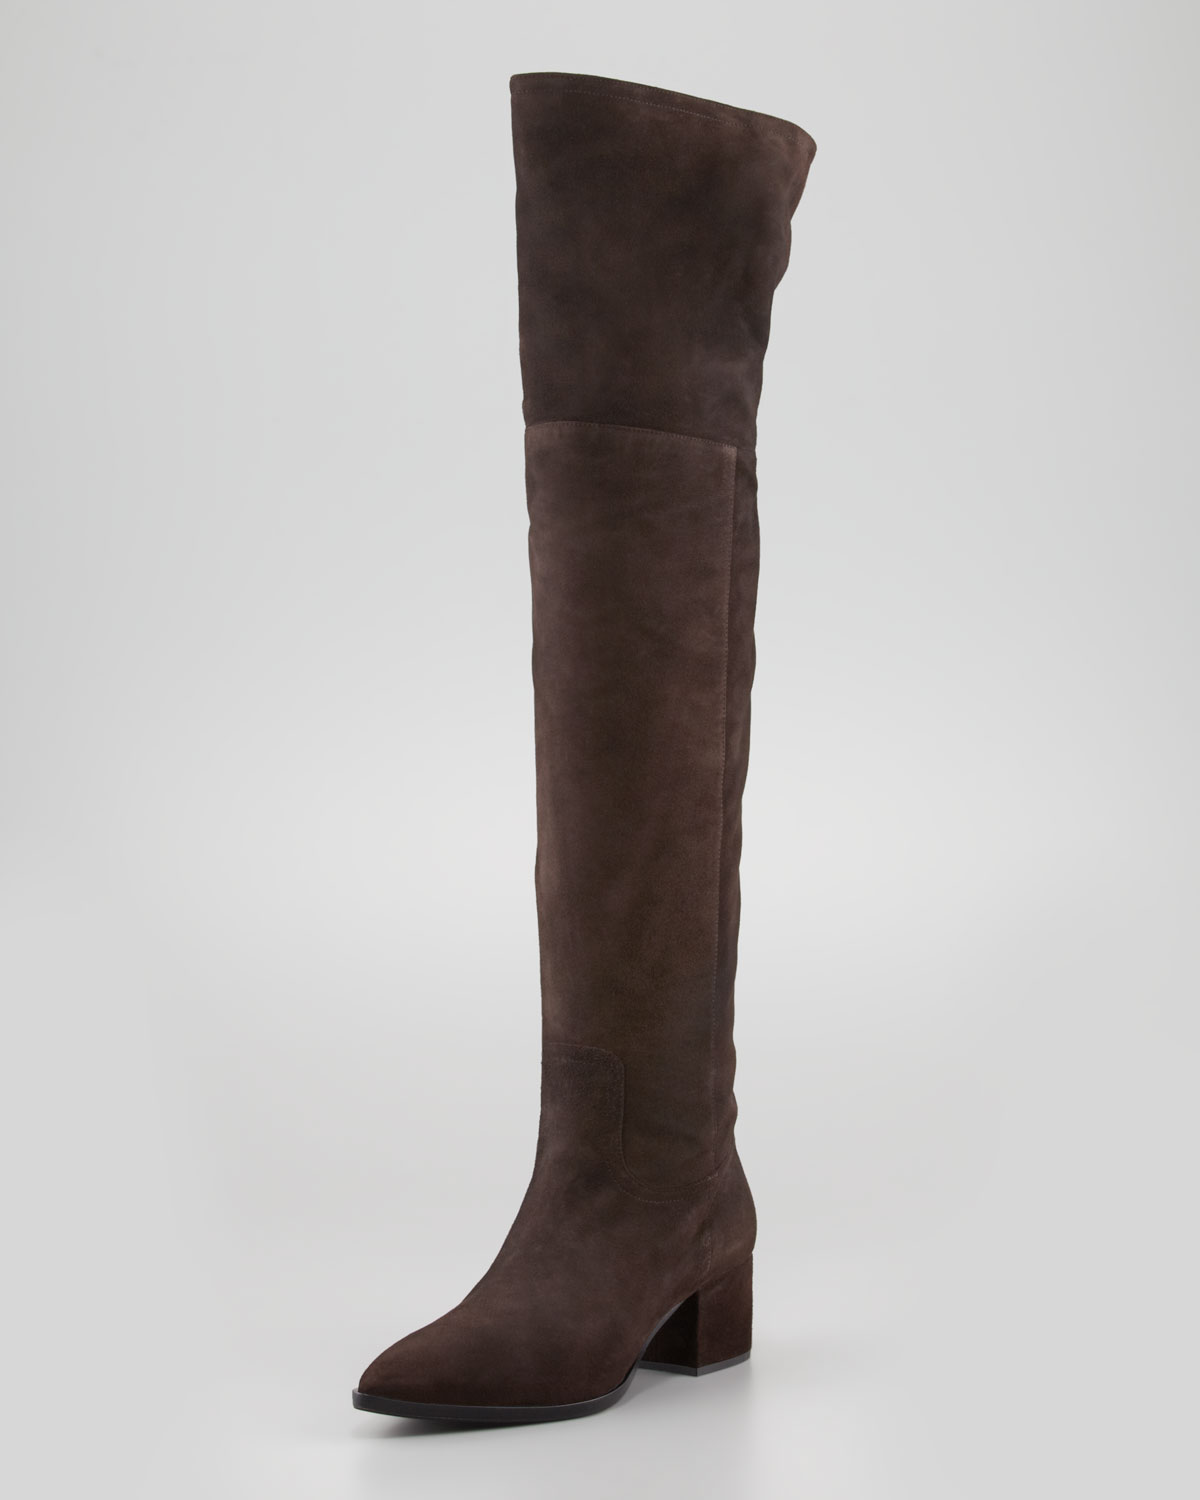 Brown Suede Over The Knee Flat Boots Boot Yc